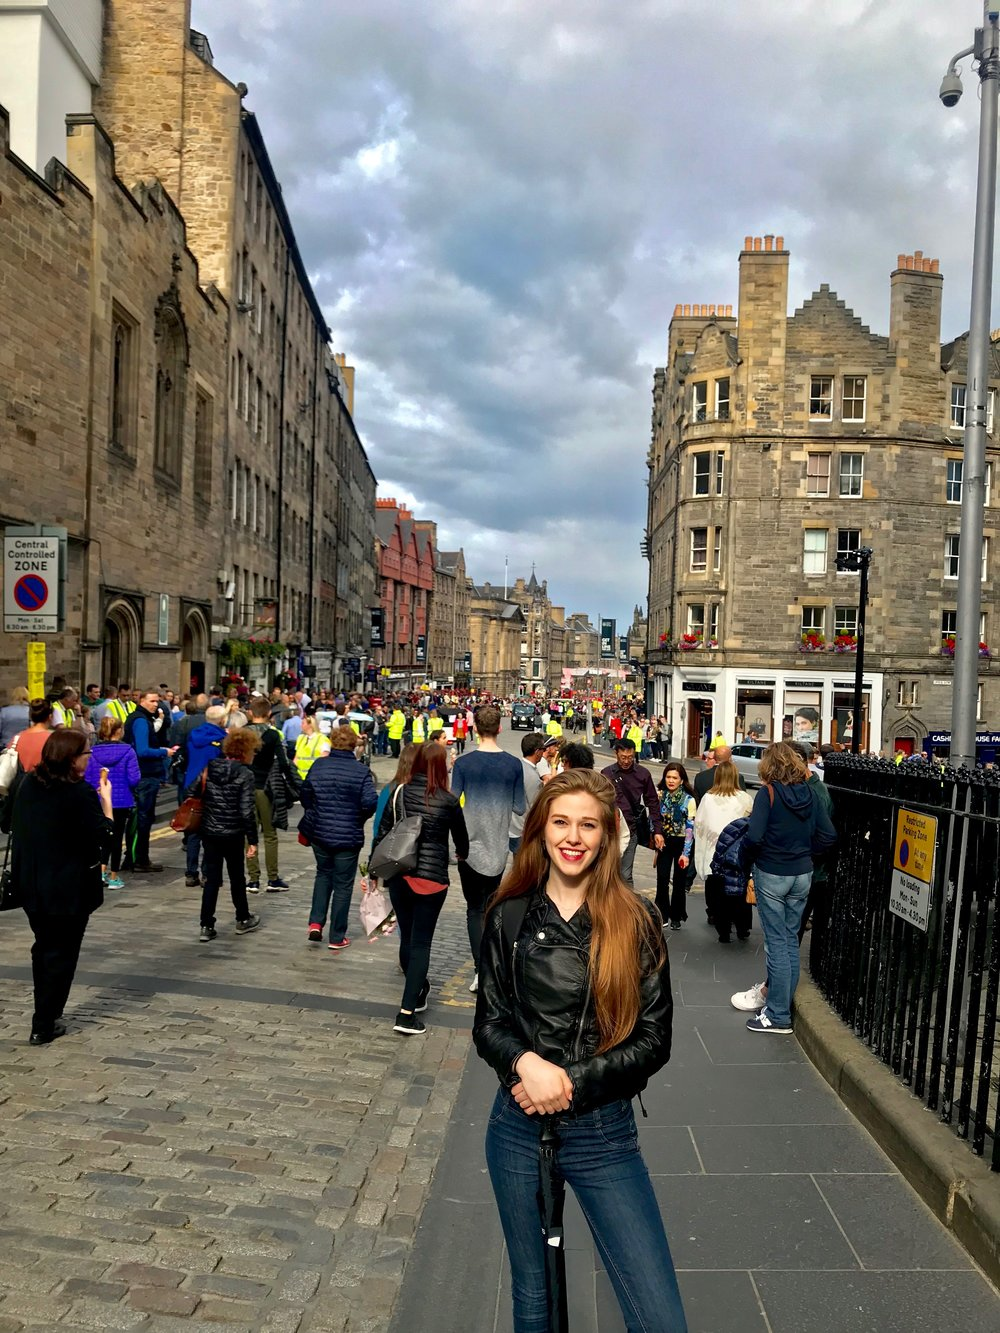 My First Edinburgh Fringe Experience! - - 4.5 days.-15 shows seen.- Lots of Rain.- Amazing experience.-Gotta go back next year!